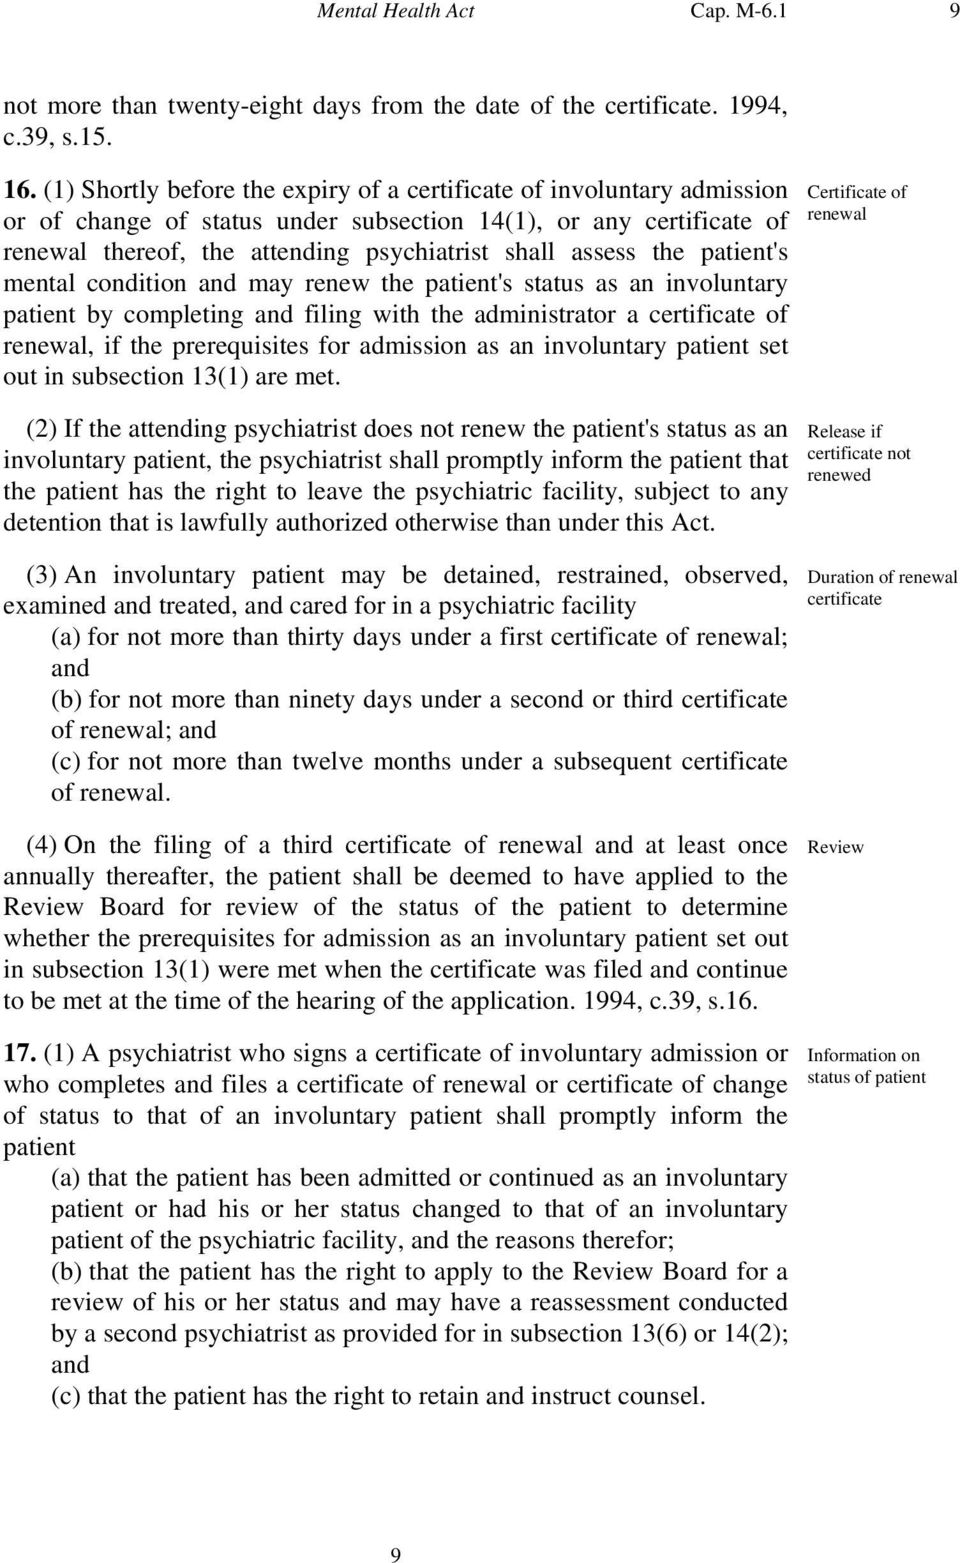 the patient's mental condition and may renew the patient's status as an involuntary patient by completing and filing with the administrator a certificate of renewal, if the prerequisites for